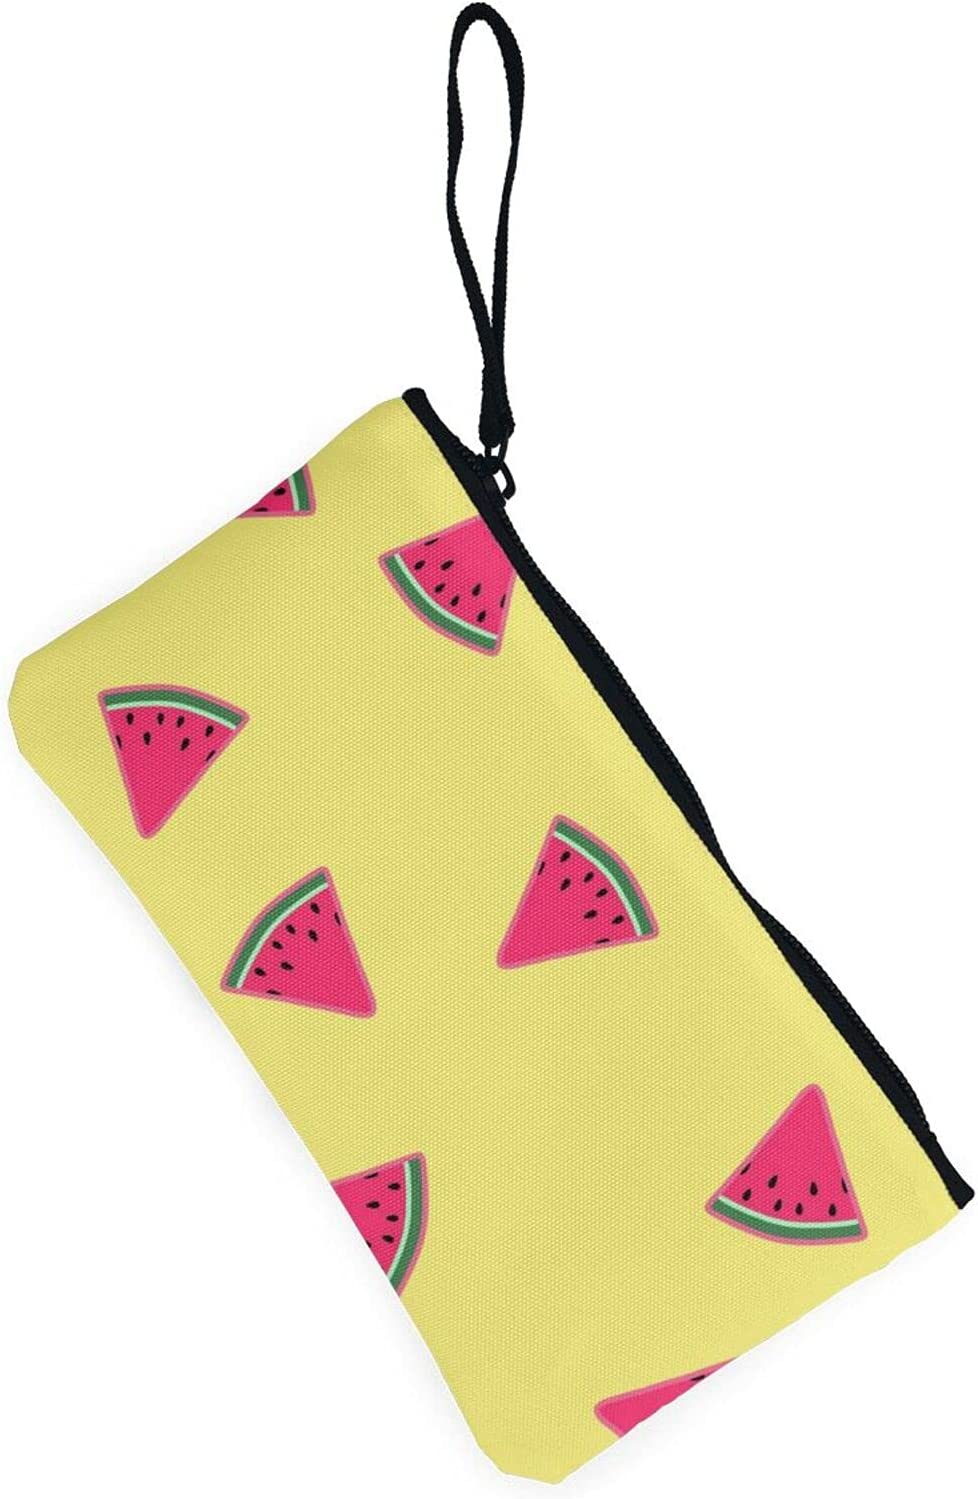 AORRUAM Yellow background and Watermelons Canvas Coin Purse,Canvas Zipper Pencil Cases,Canvas Change Purse Pouch Mini Wallet Coin Bag